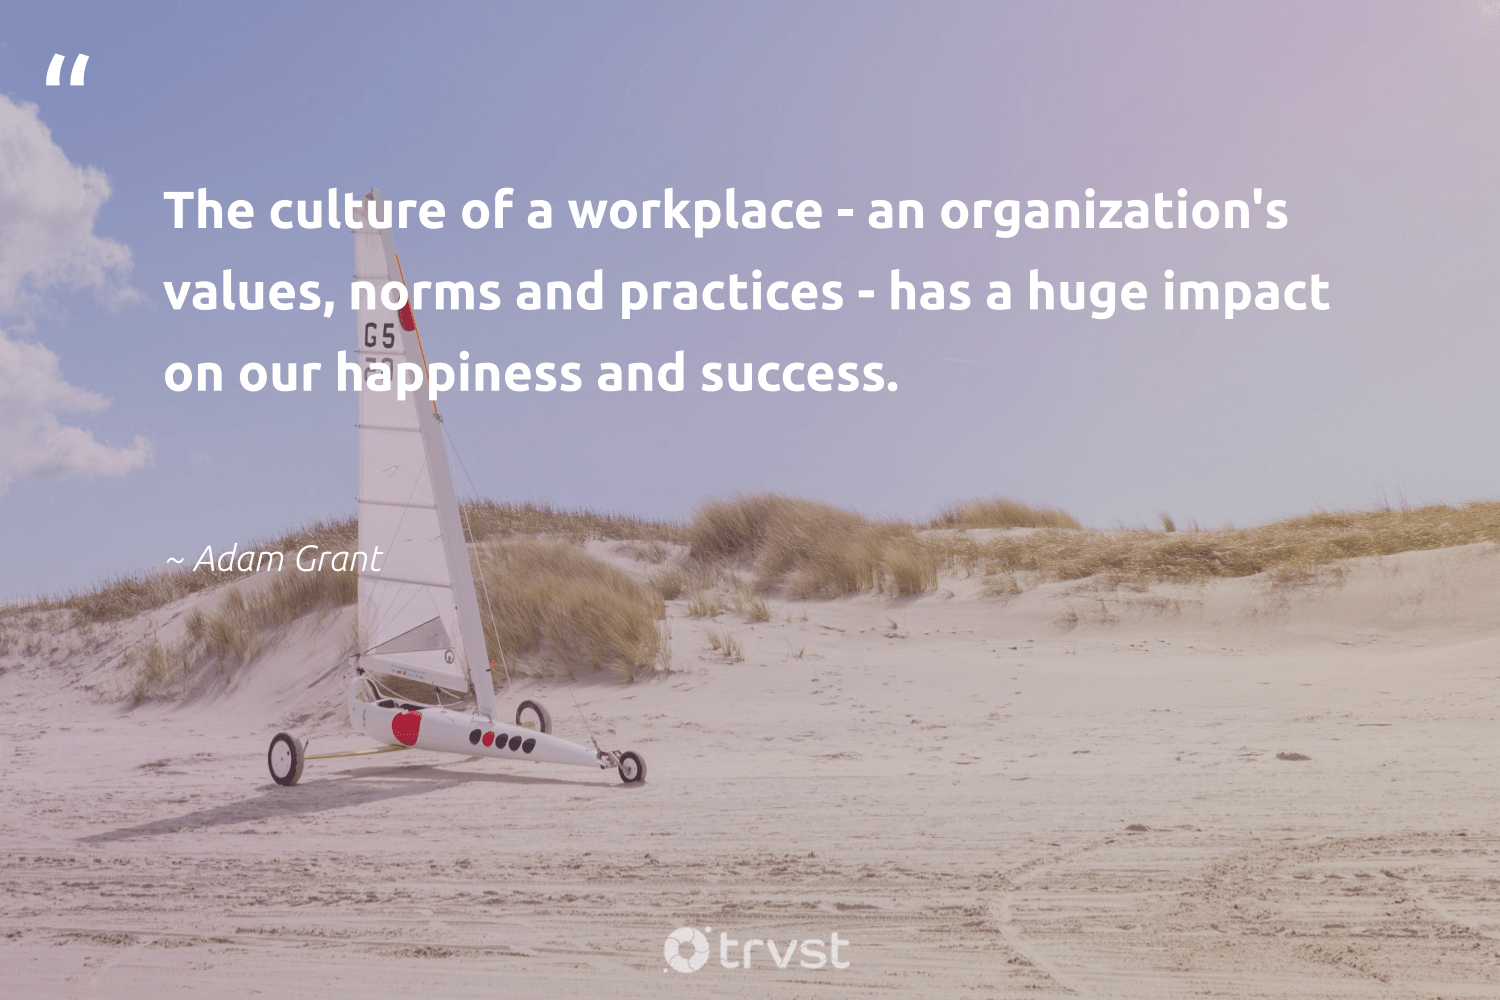 """""""The culture of a workplace - an organization's values, norms and practices - has a huge impact on our happiness and success.""""  - Adam Grant #trvst #quotes #impact #happiness #success #motivational #dogood #softskills #collectiveaction #productivity #makeadifference #begreat"""